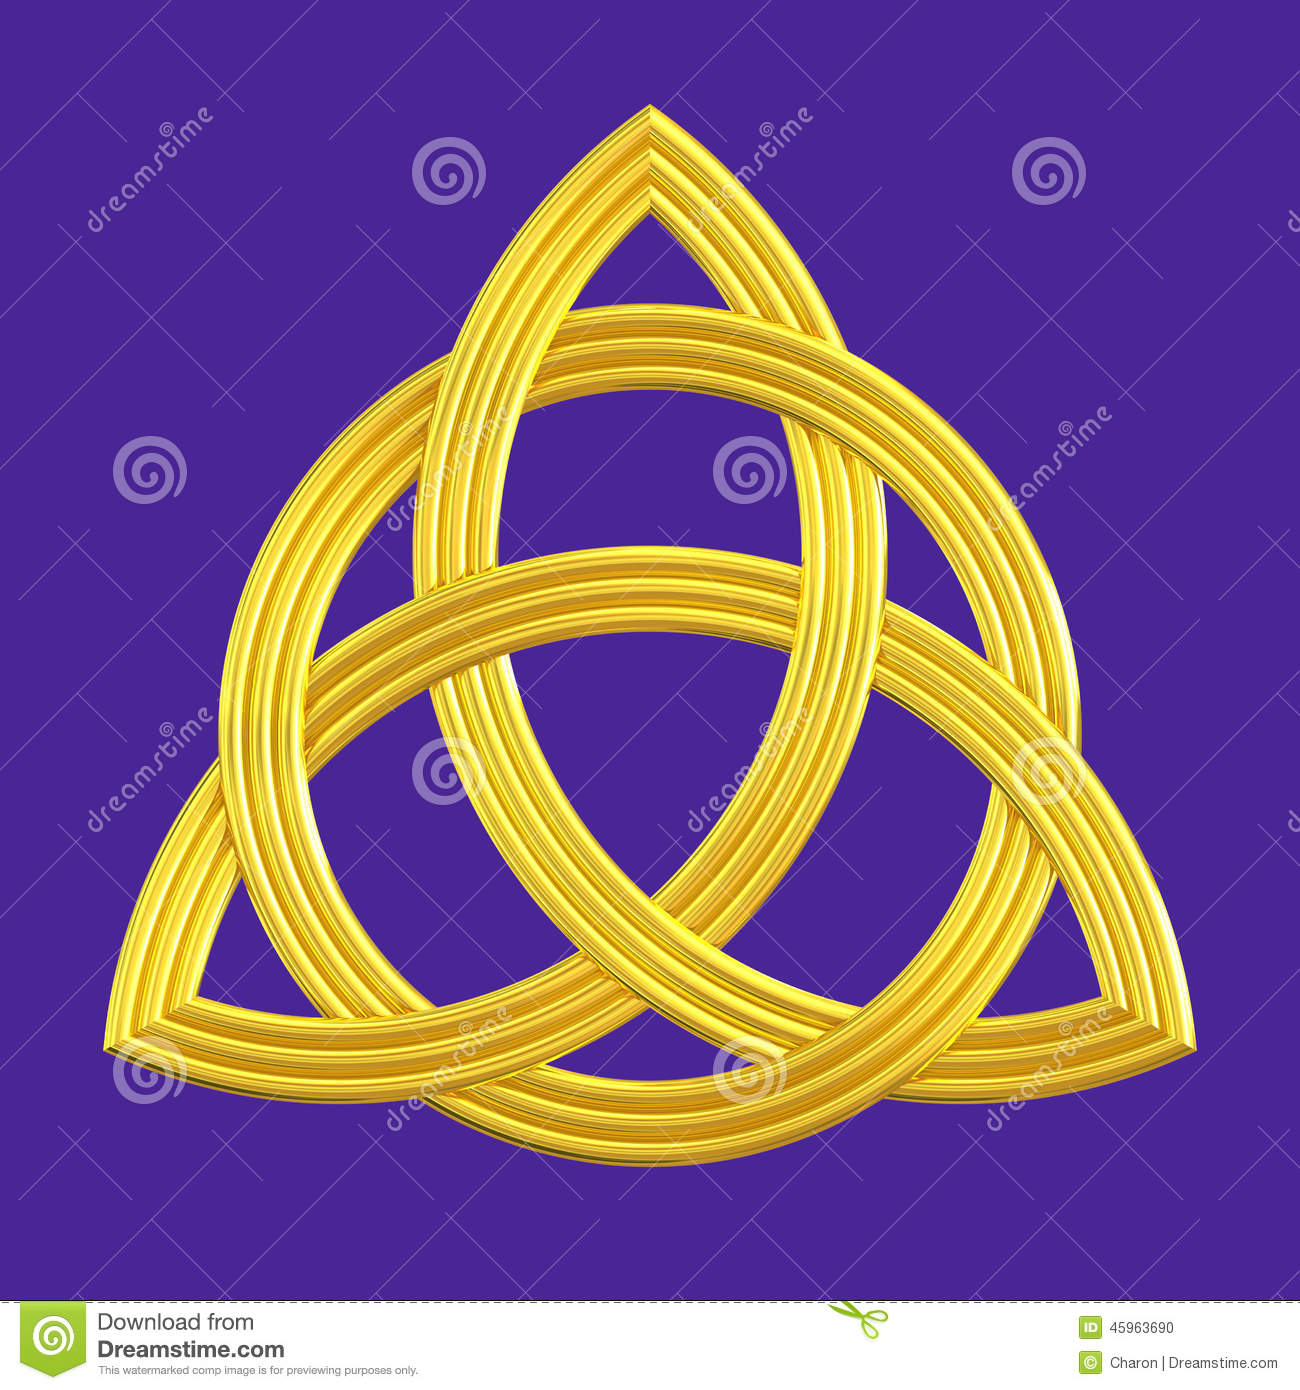 Trinity Knot Gold Triquetra Symbol Stock Illustration - Image ...